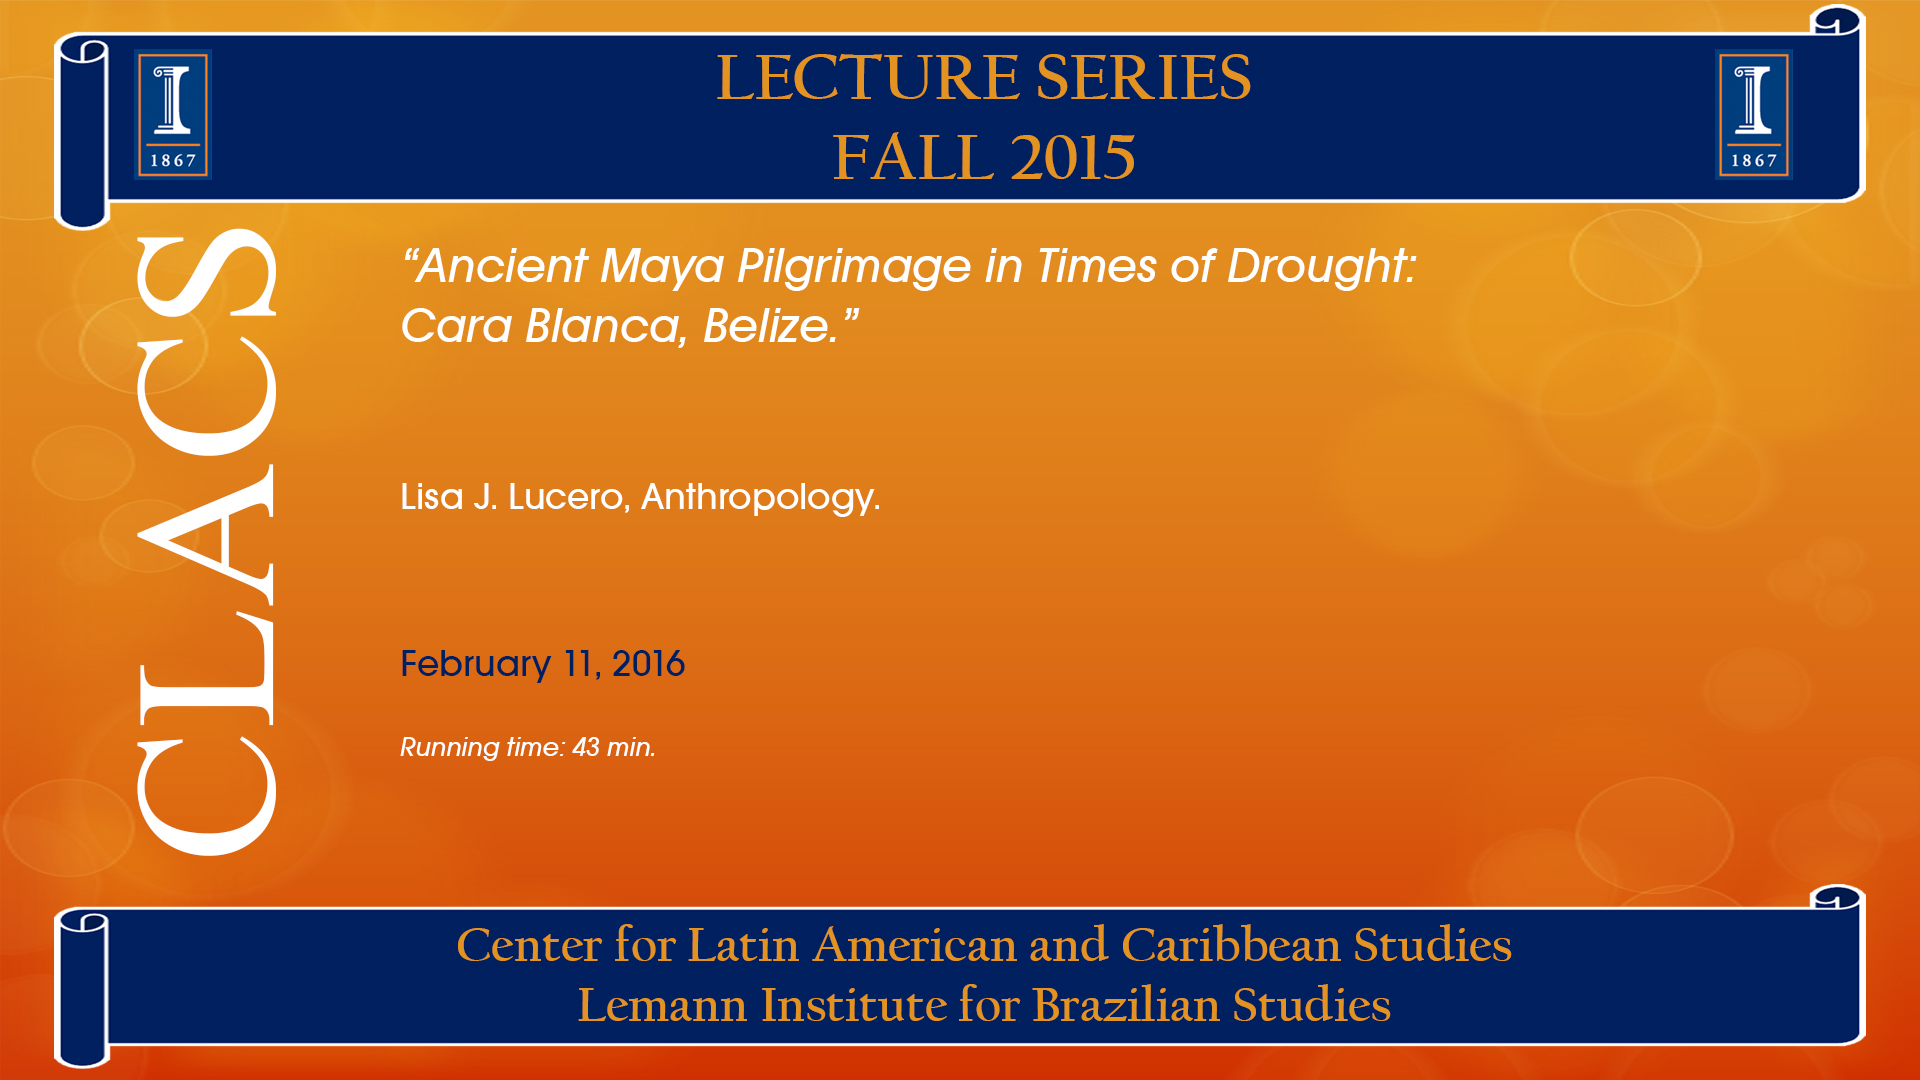 Ancient Maya Pilgrimage in Times of Drought: Cara Blanca, Belize